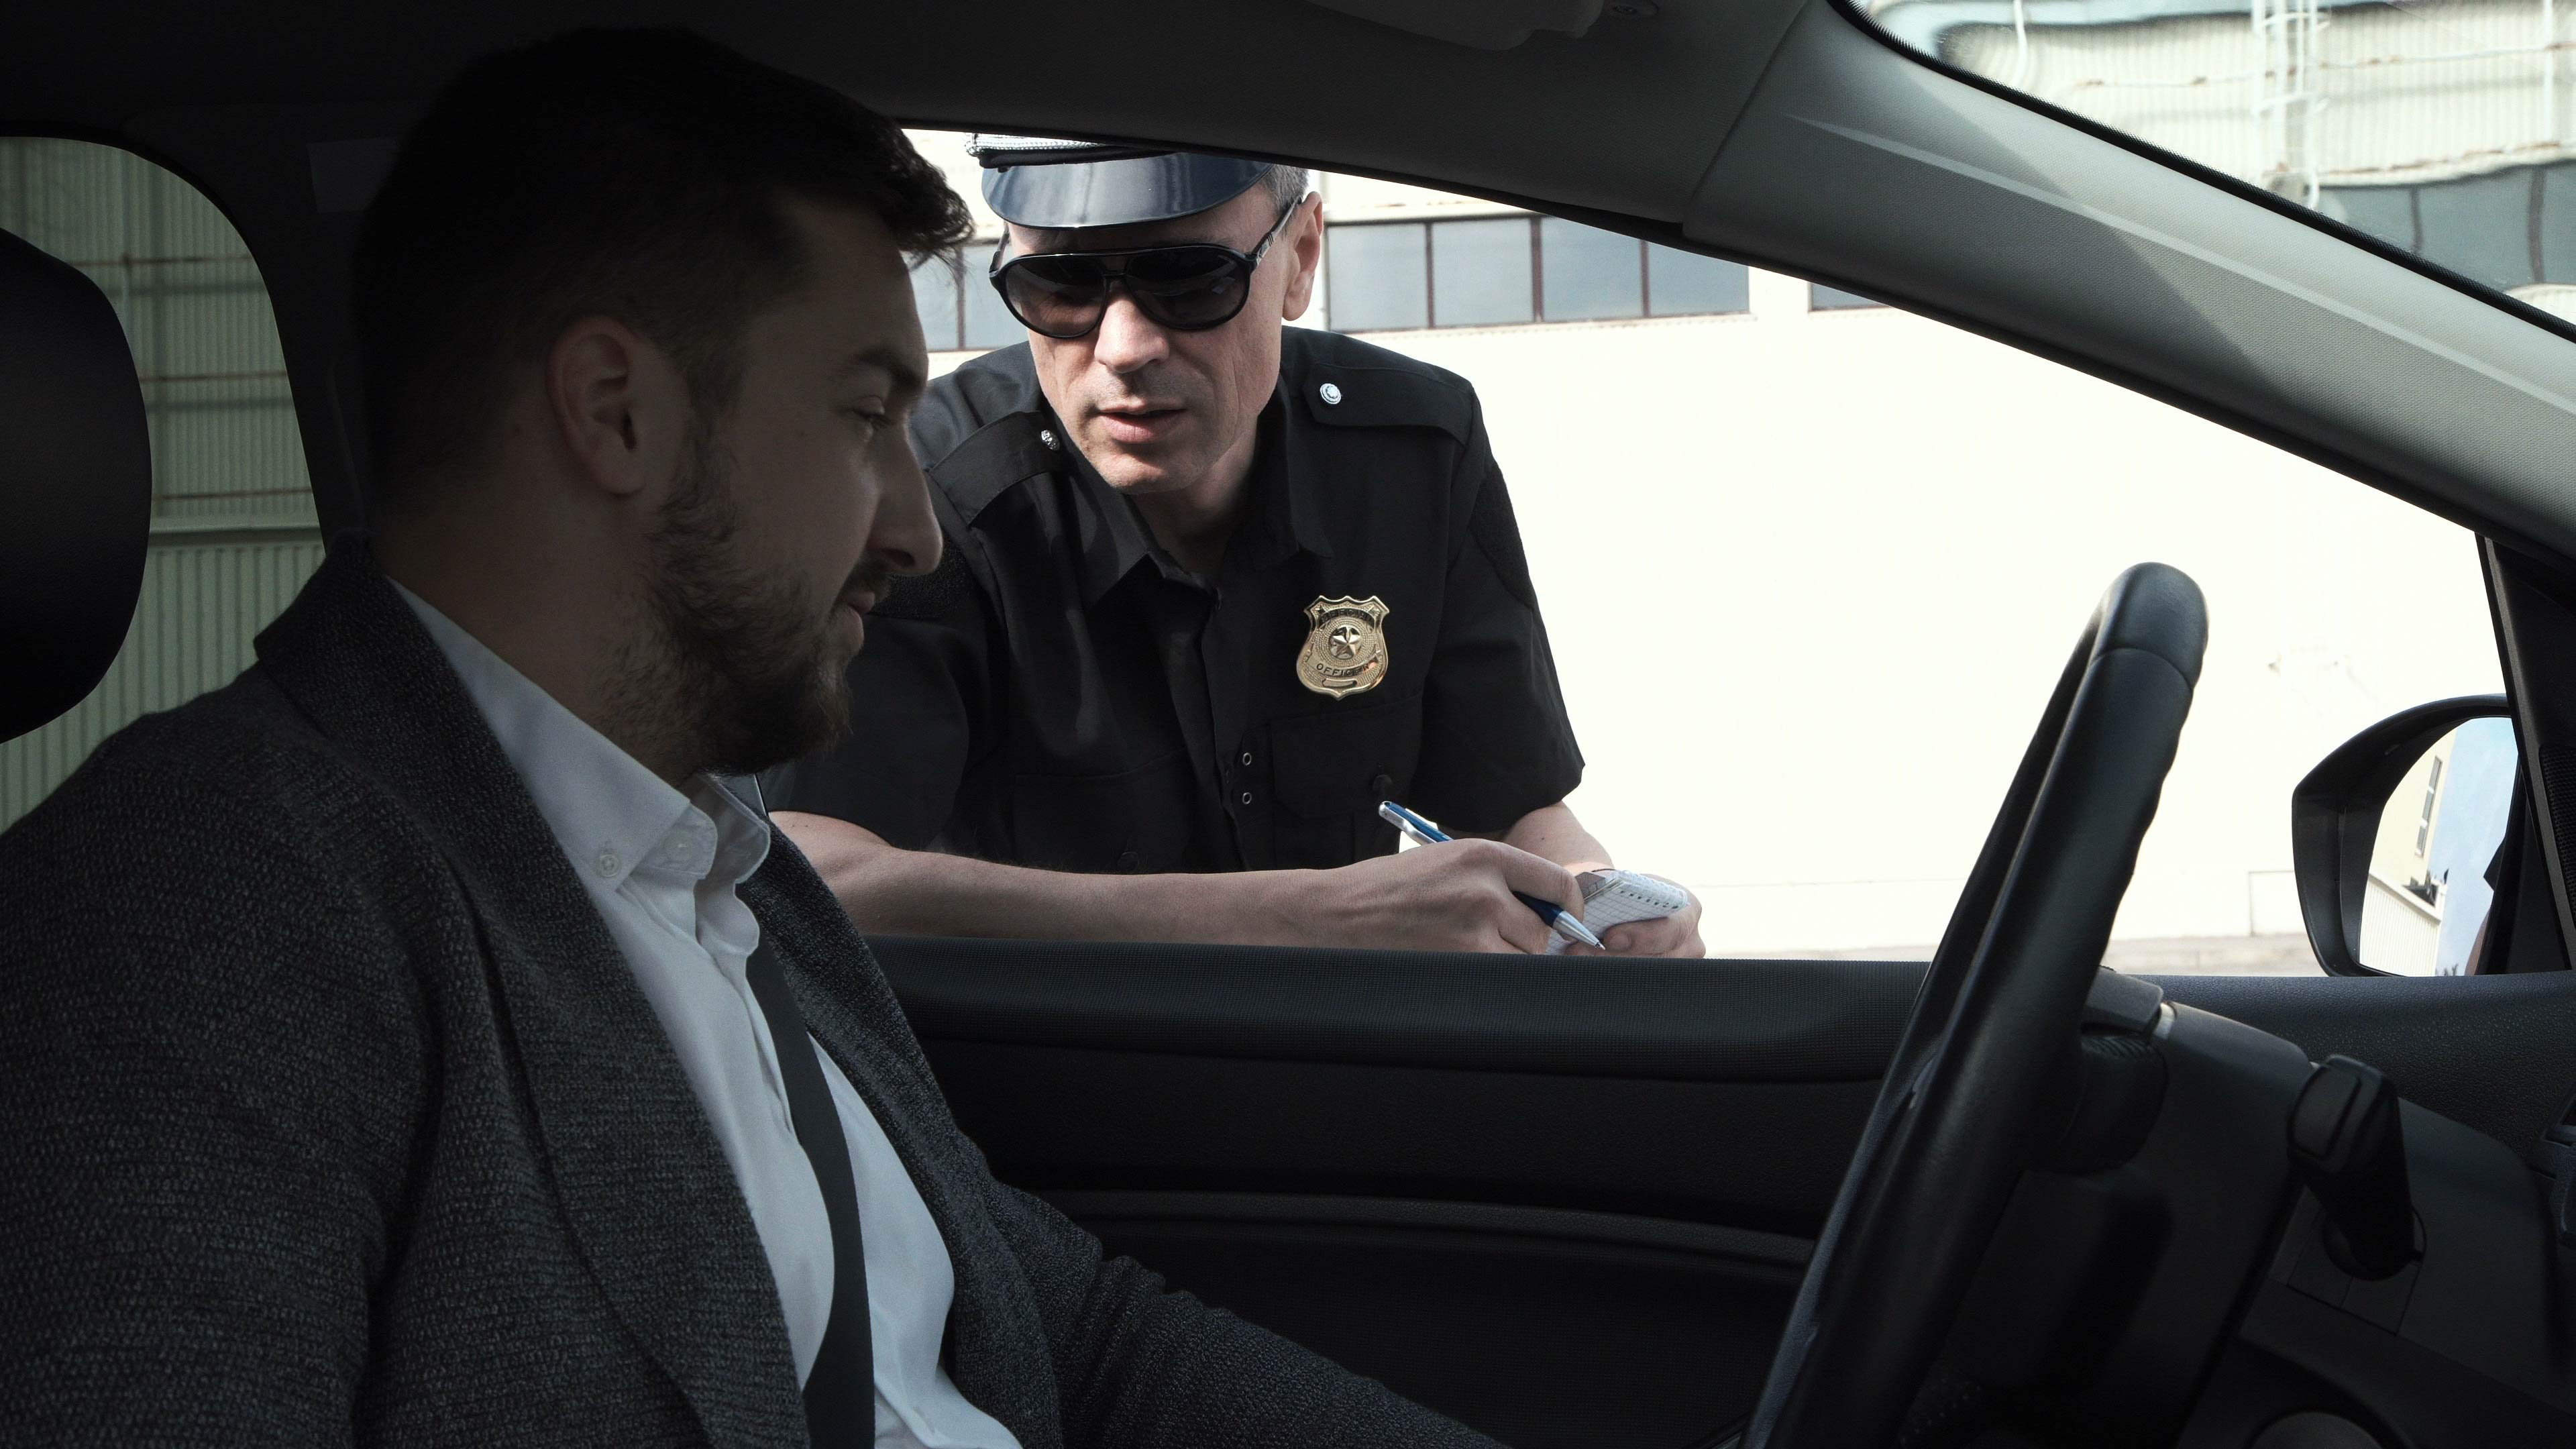 Questions Police Officers Can Ask Drivers Stopped for DUI